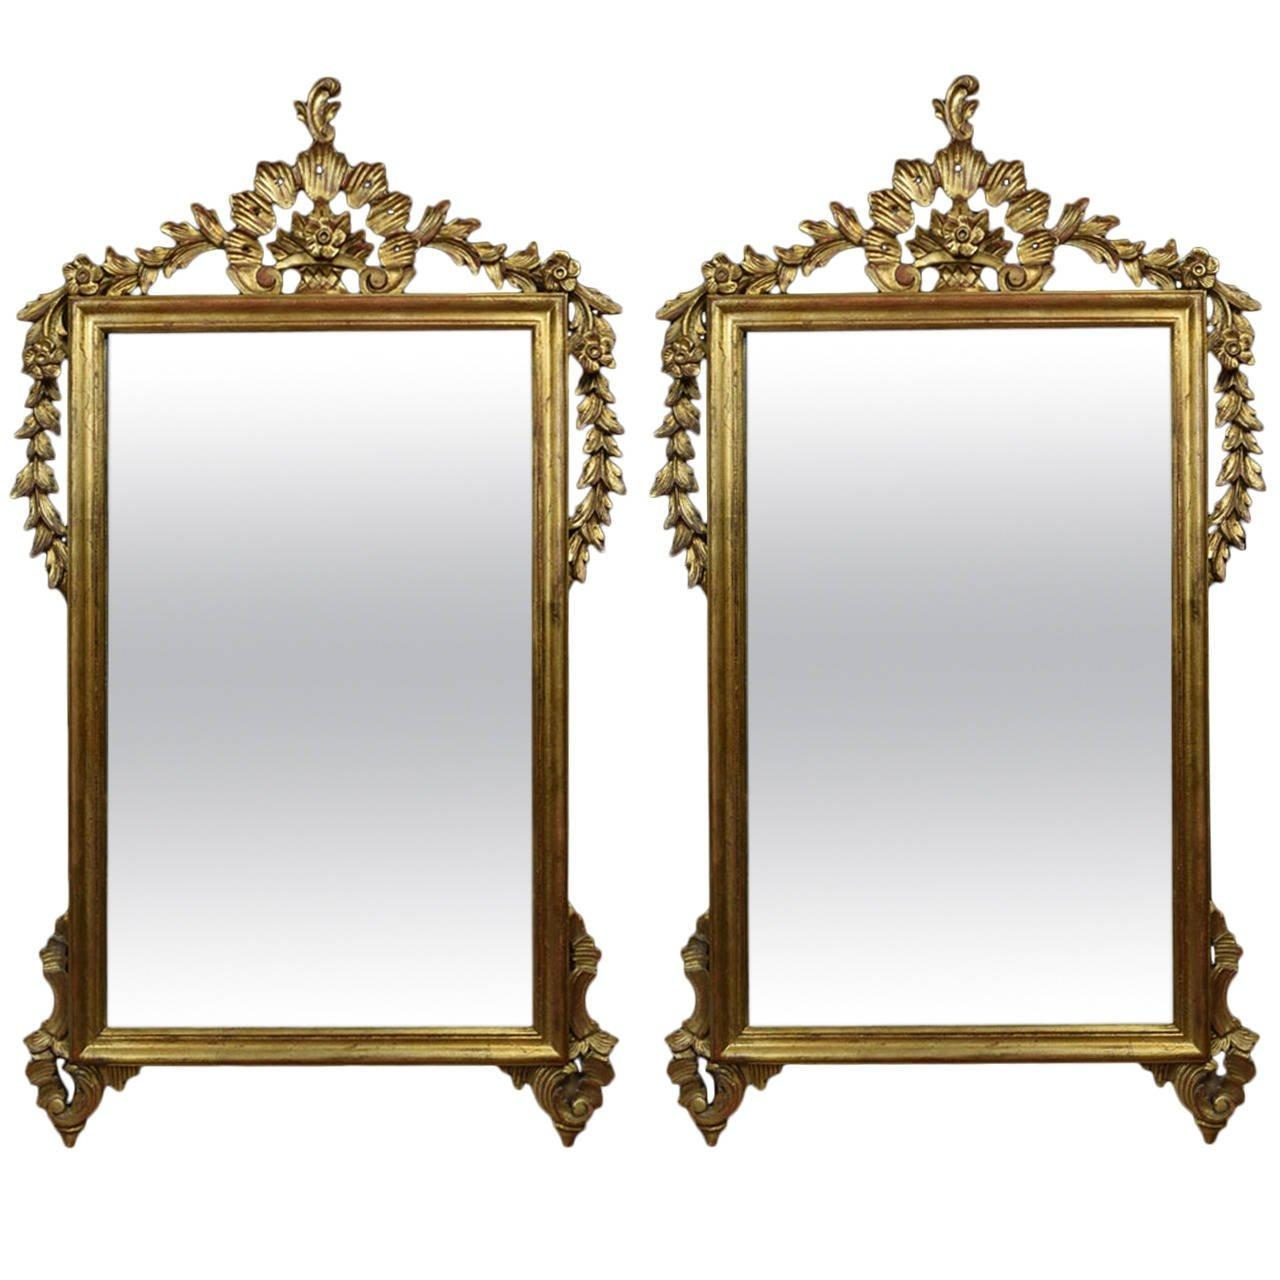 Pair Of Victorian Style Giltwood And Composition Wall Mirrors At Within Victorian Style Mirrors (View 3 of 20)